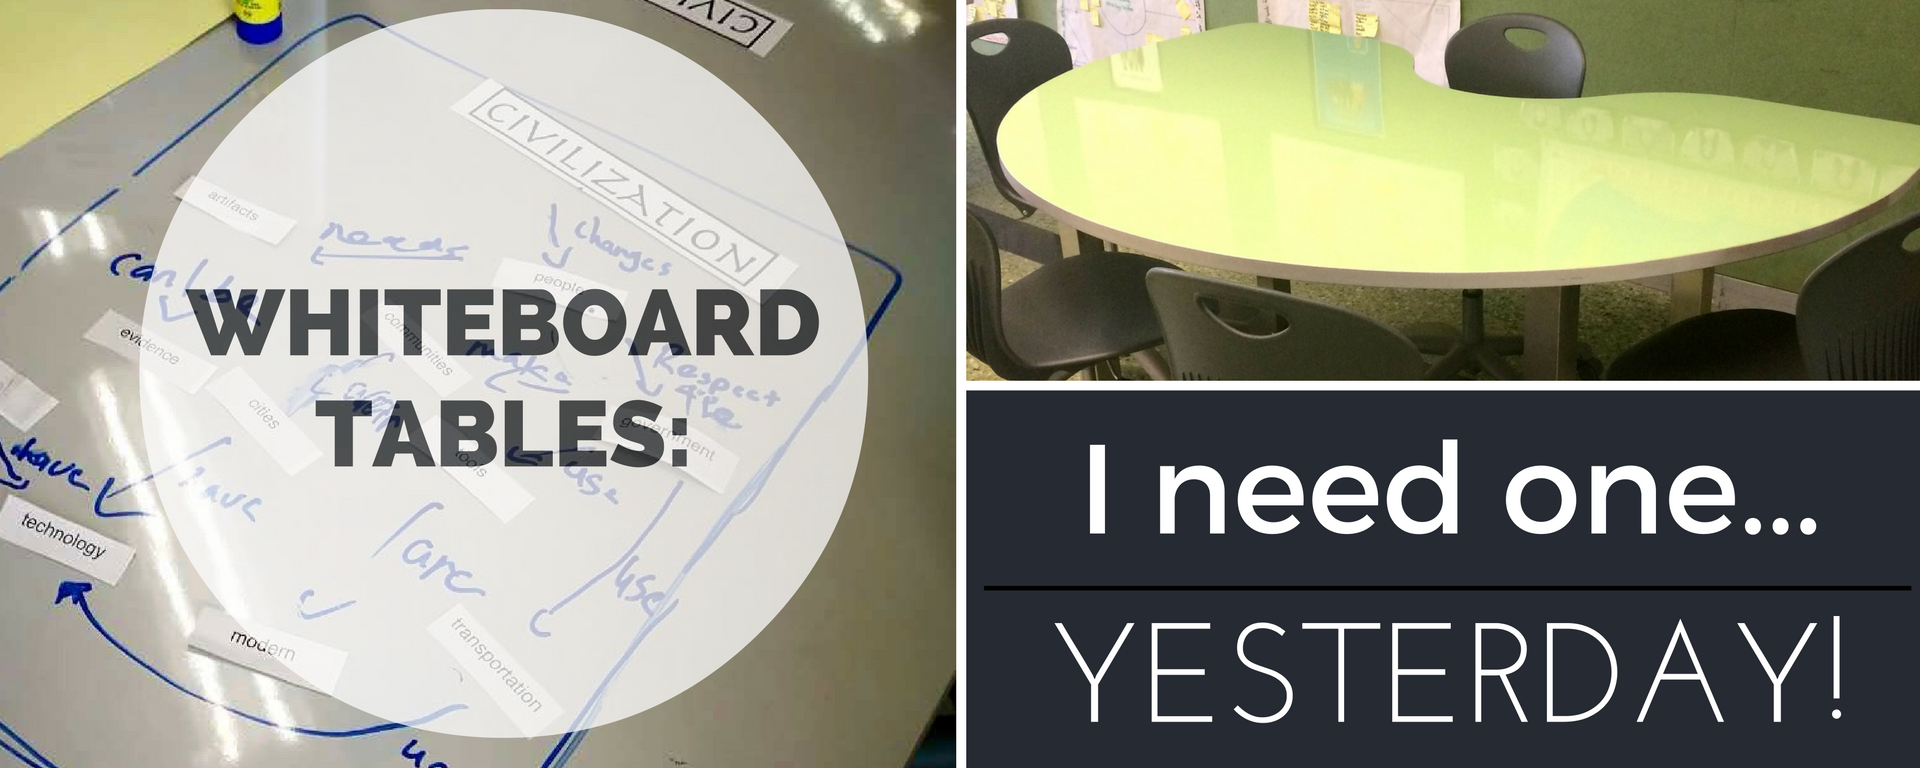 Whiteboard Tables I Need One Yesterday